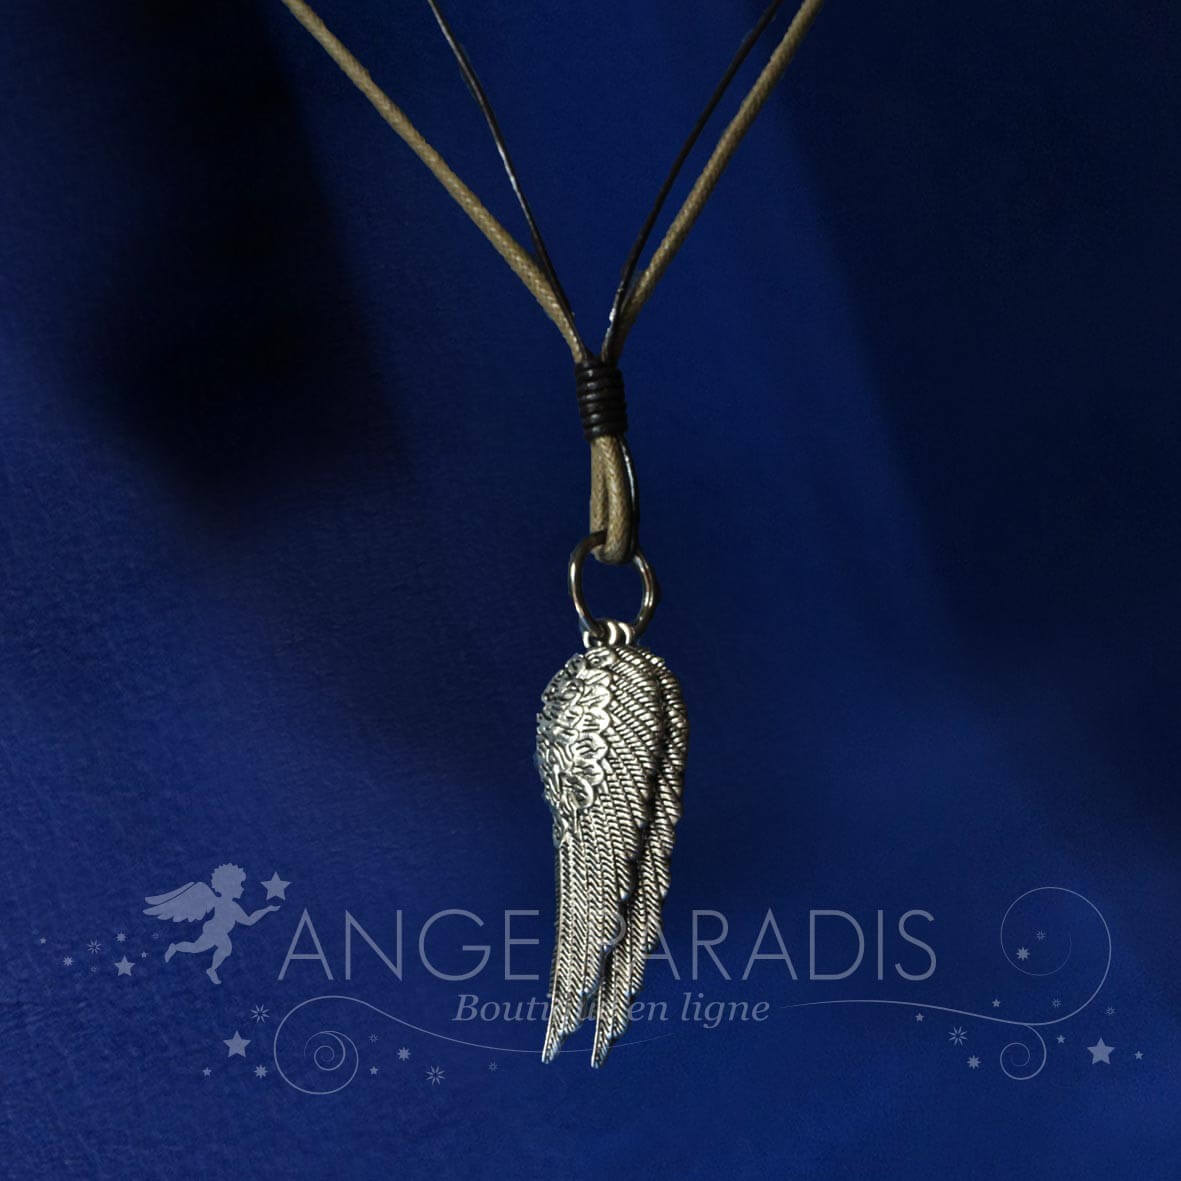 COLLIER CUIR AILES D'ANGES